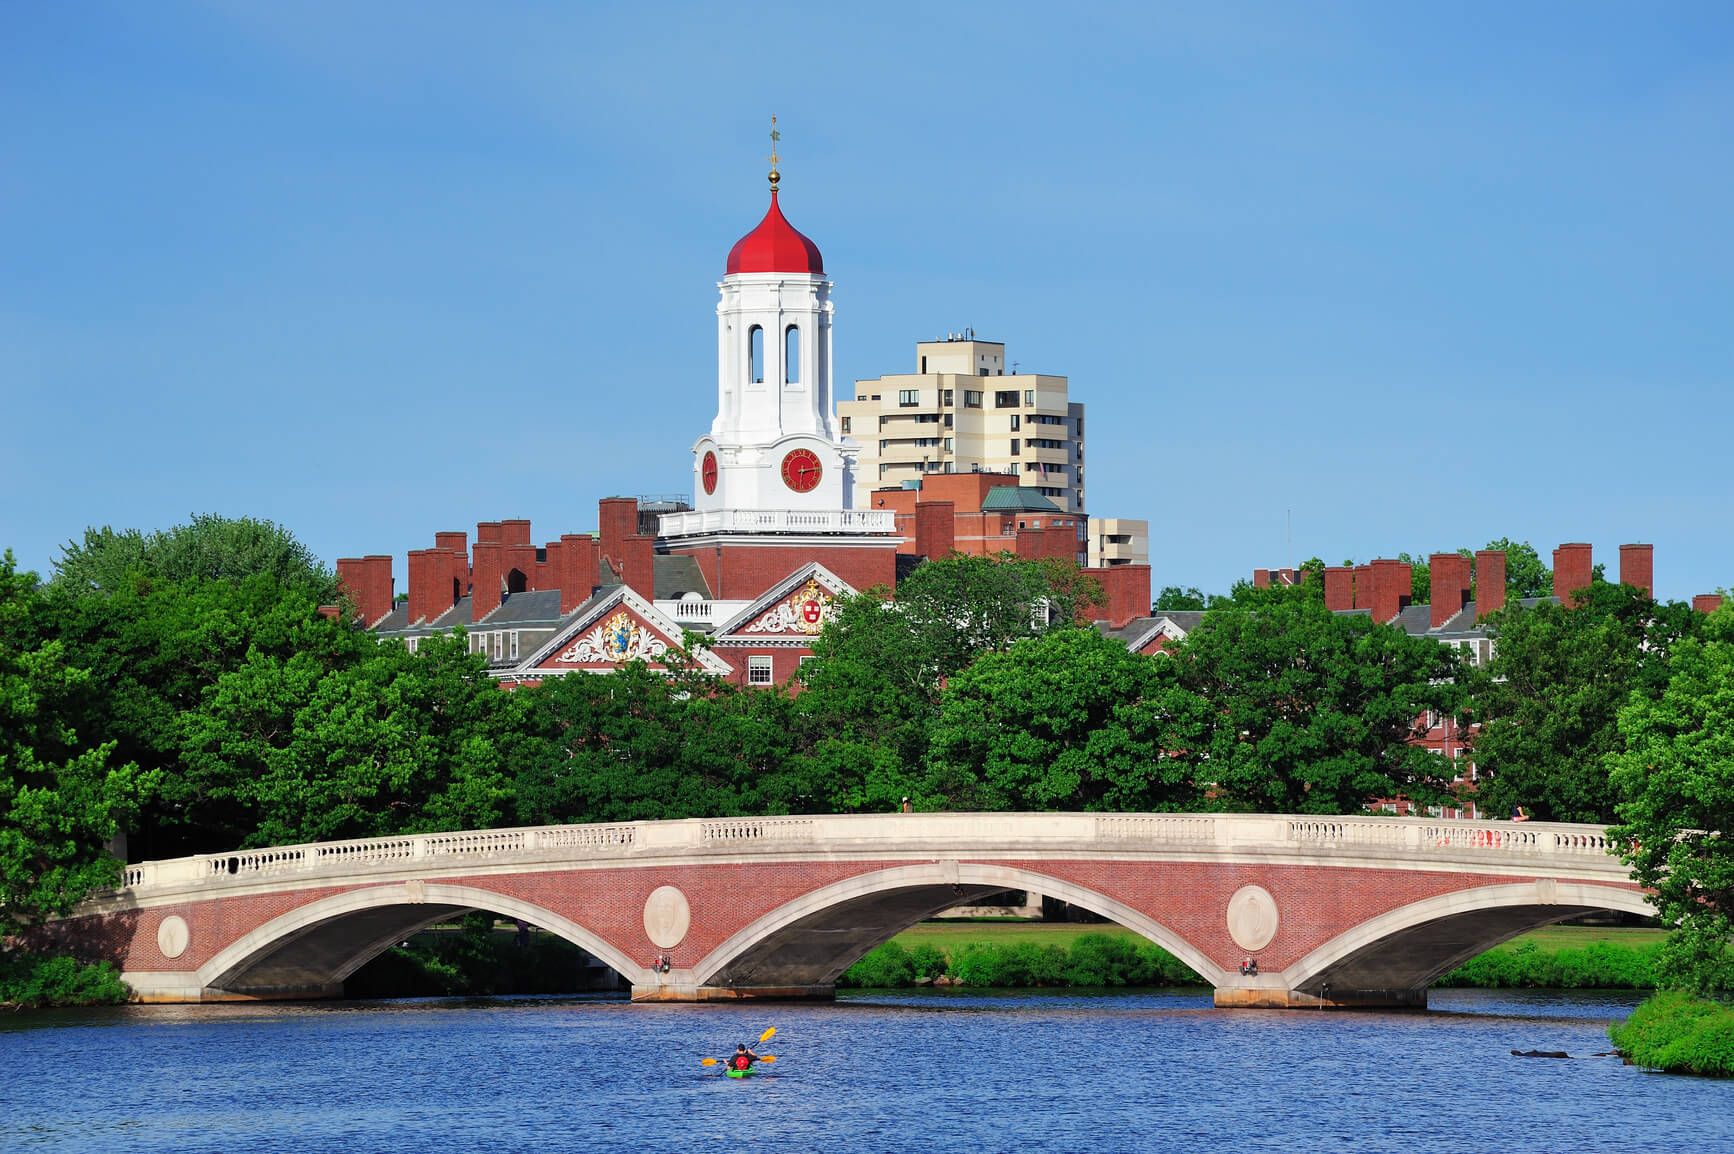 Non-stop from London, UK to Boston, USA for only £99 one-way (or £170 roundtrip)